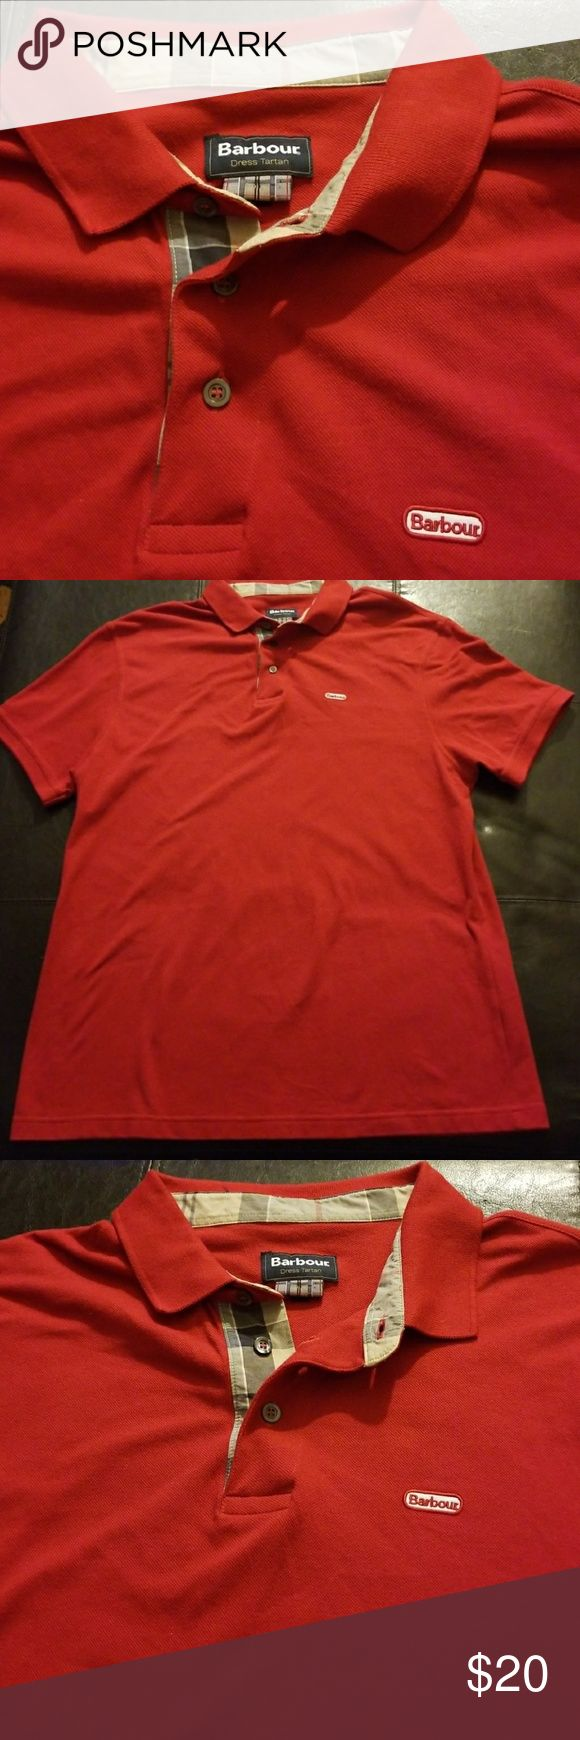 Barbour Red Polo Shirt Barbour red polo shirt with tan plaid print at the neckline. Size XXL (Bin 12) Barbour Shirts Polos